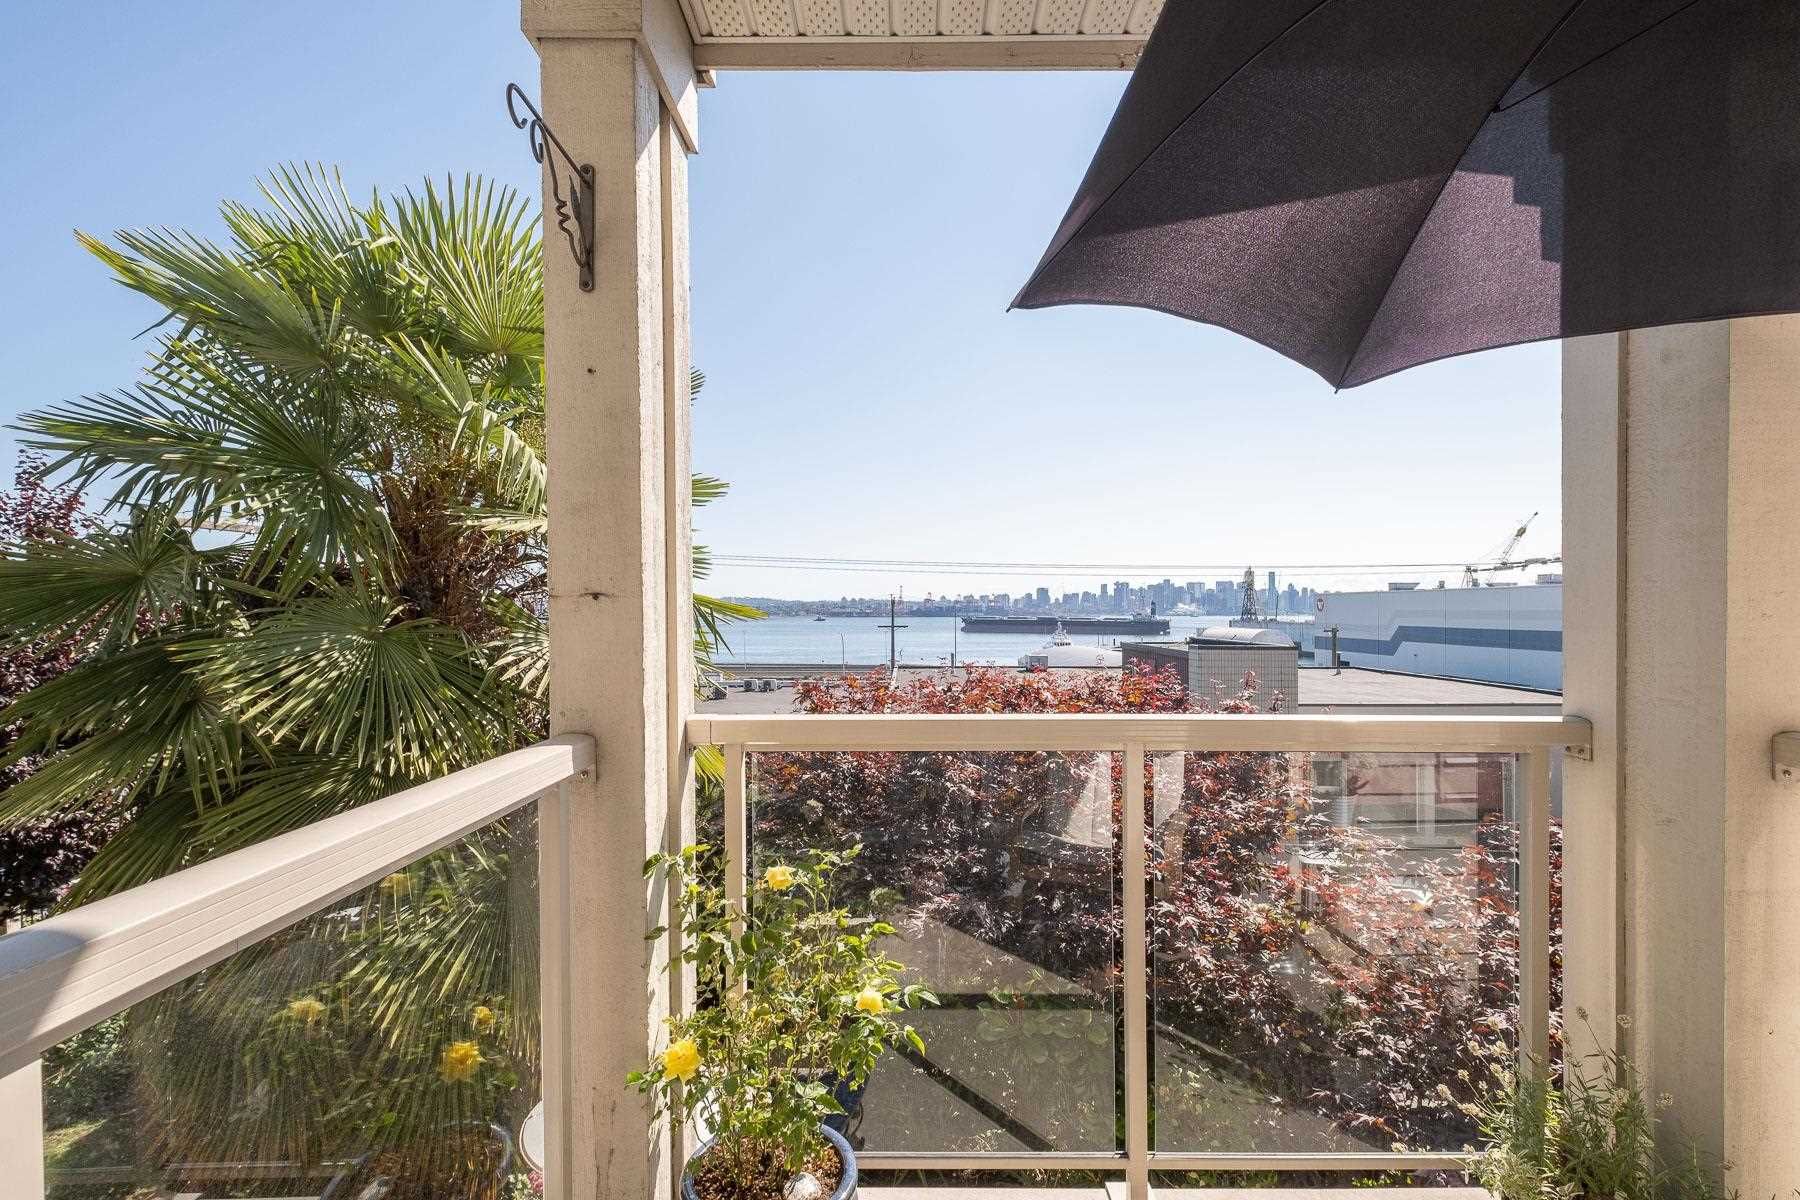 205 333 E 1ST STREET - Lower Lonsdale Apartment/Condo for sale, 1 Bedroom (R2618010) - #2